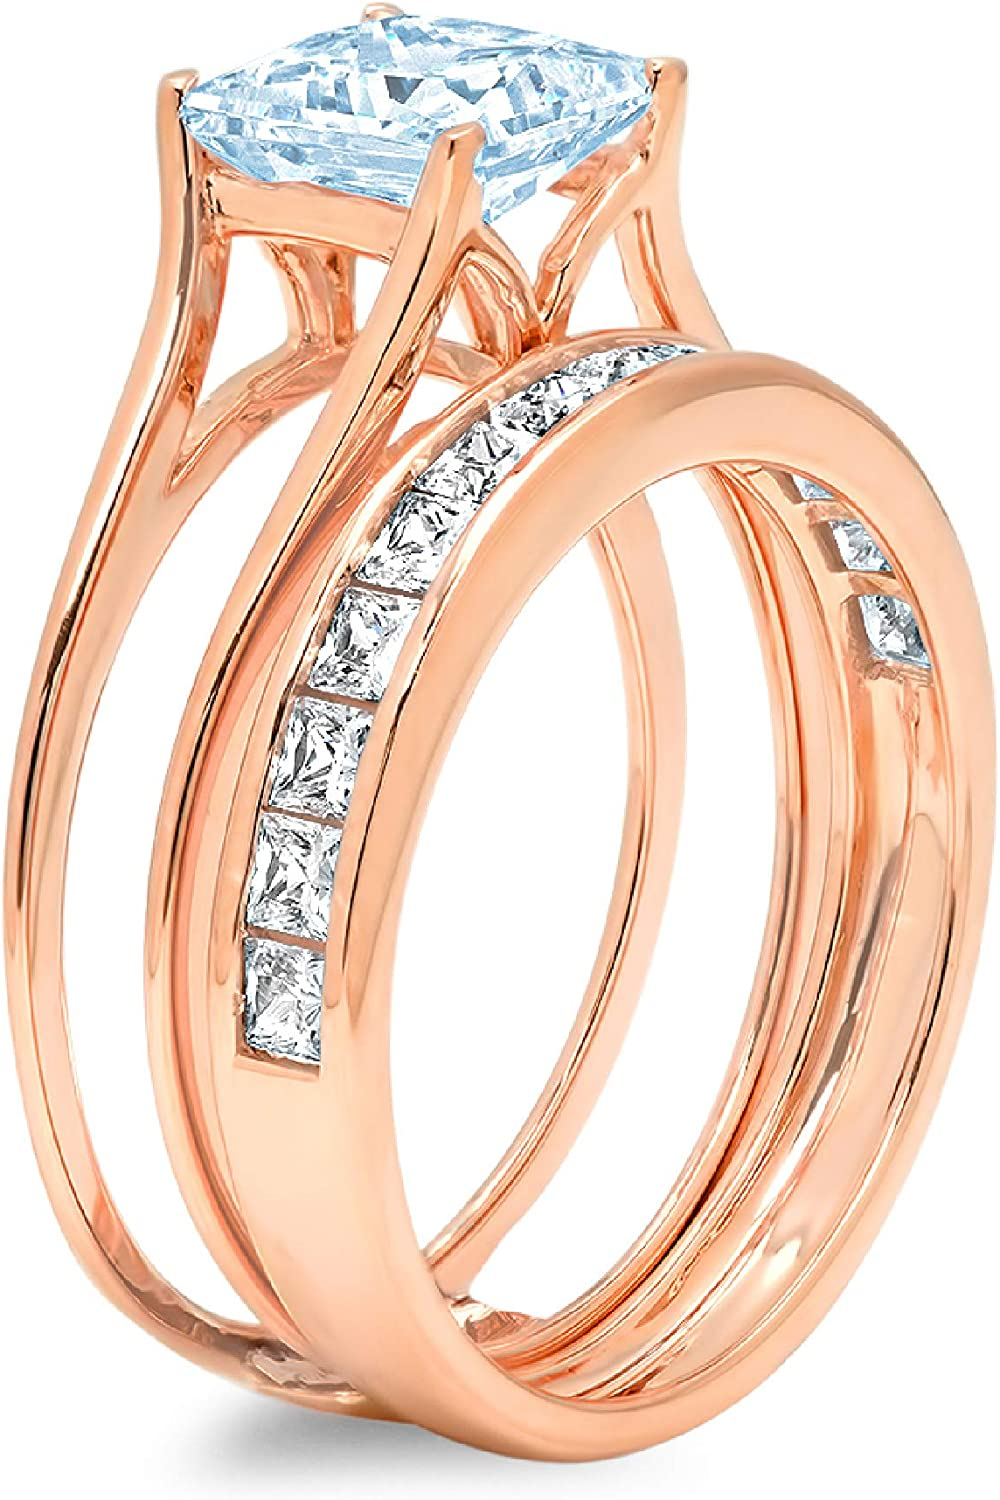 3.37ct Princess Cut Pave Solitaire with Accent Aquamarine Blue Simulated Diamond Designer Statement Classic Sliding Ring Band Set Real Solid 14k Rose Gold